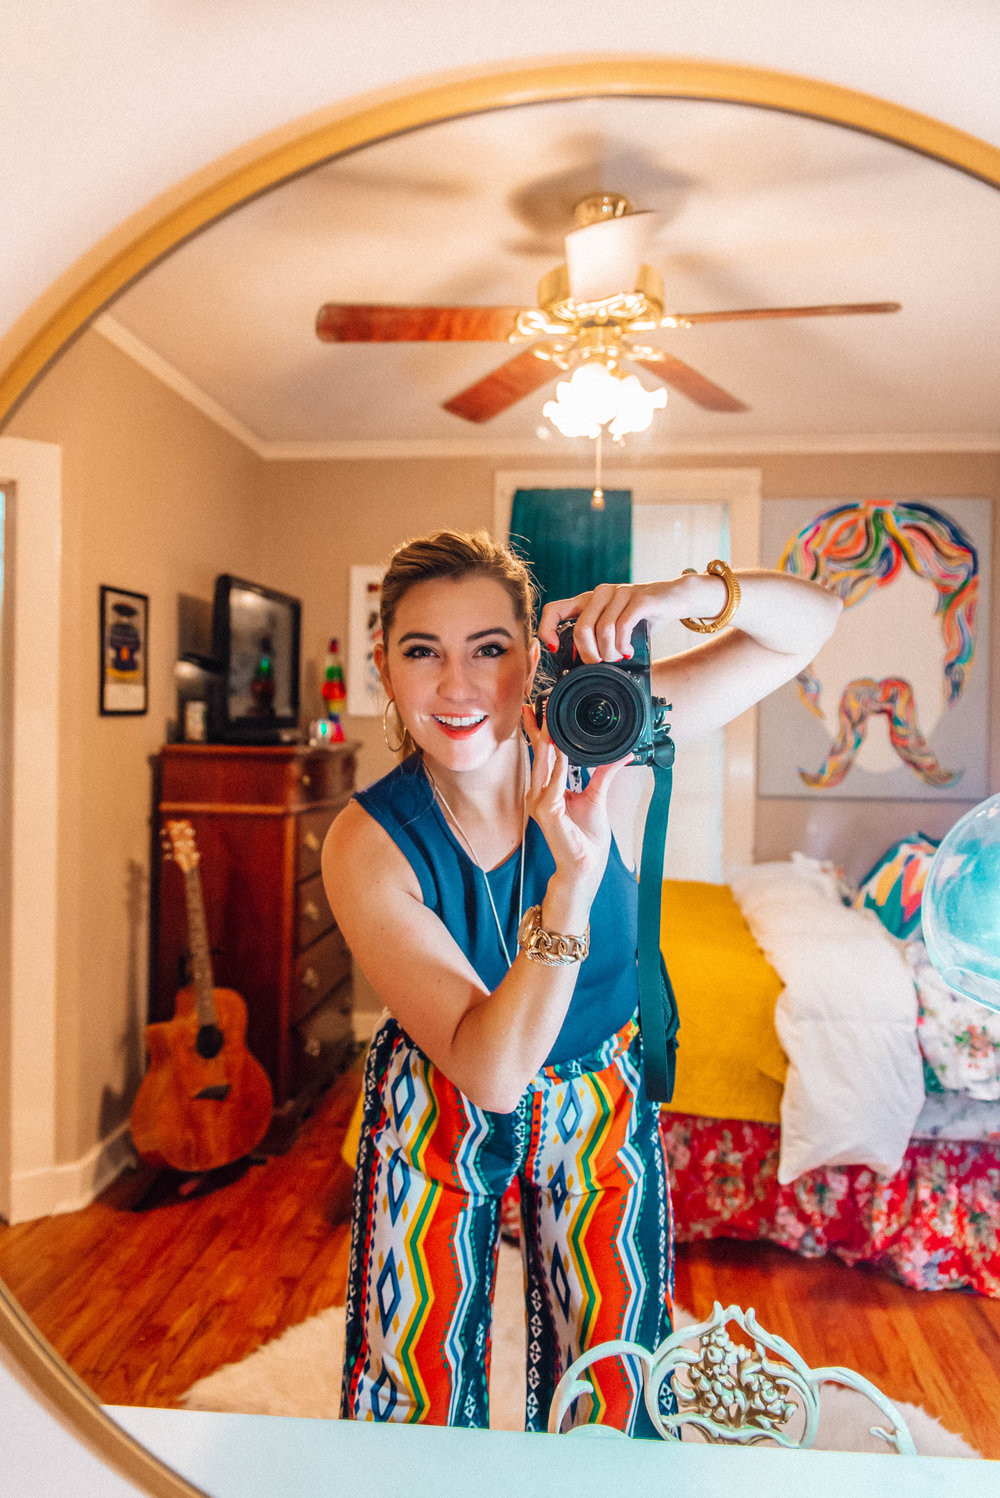 My Chromatic Home | Garden District Apartment Tour with Jordan Hefler in Baton Rouge, Louisiana